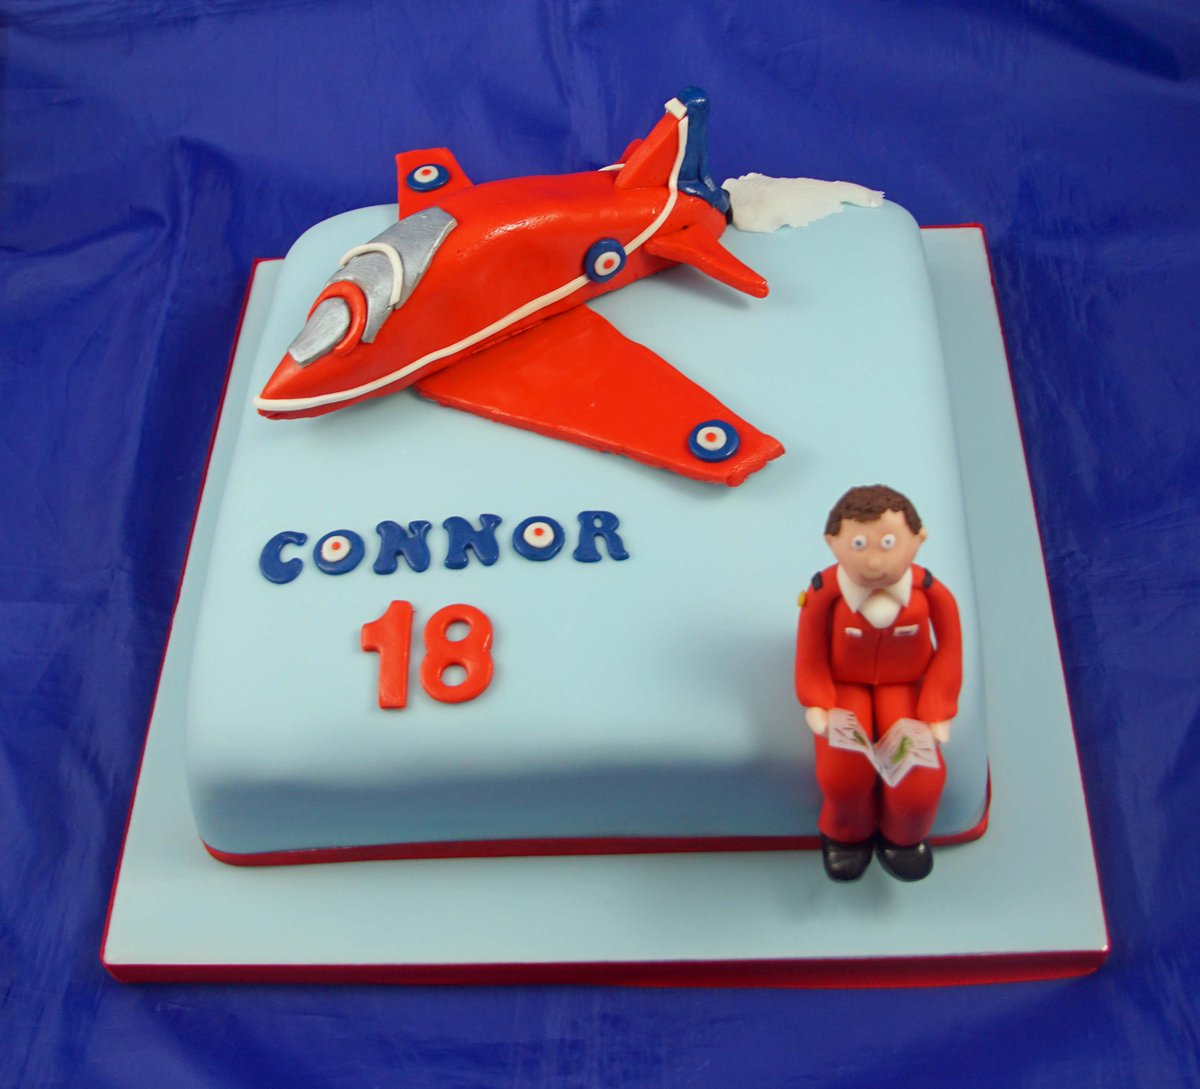 Nicola Young On Twitter Red Arrows Birthday Cake Cake